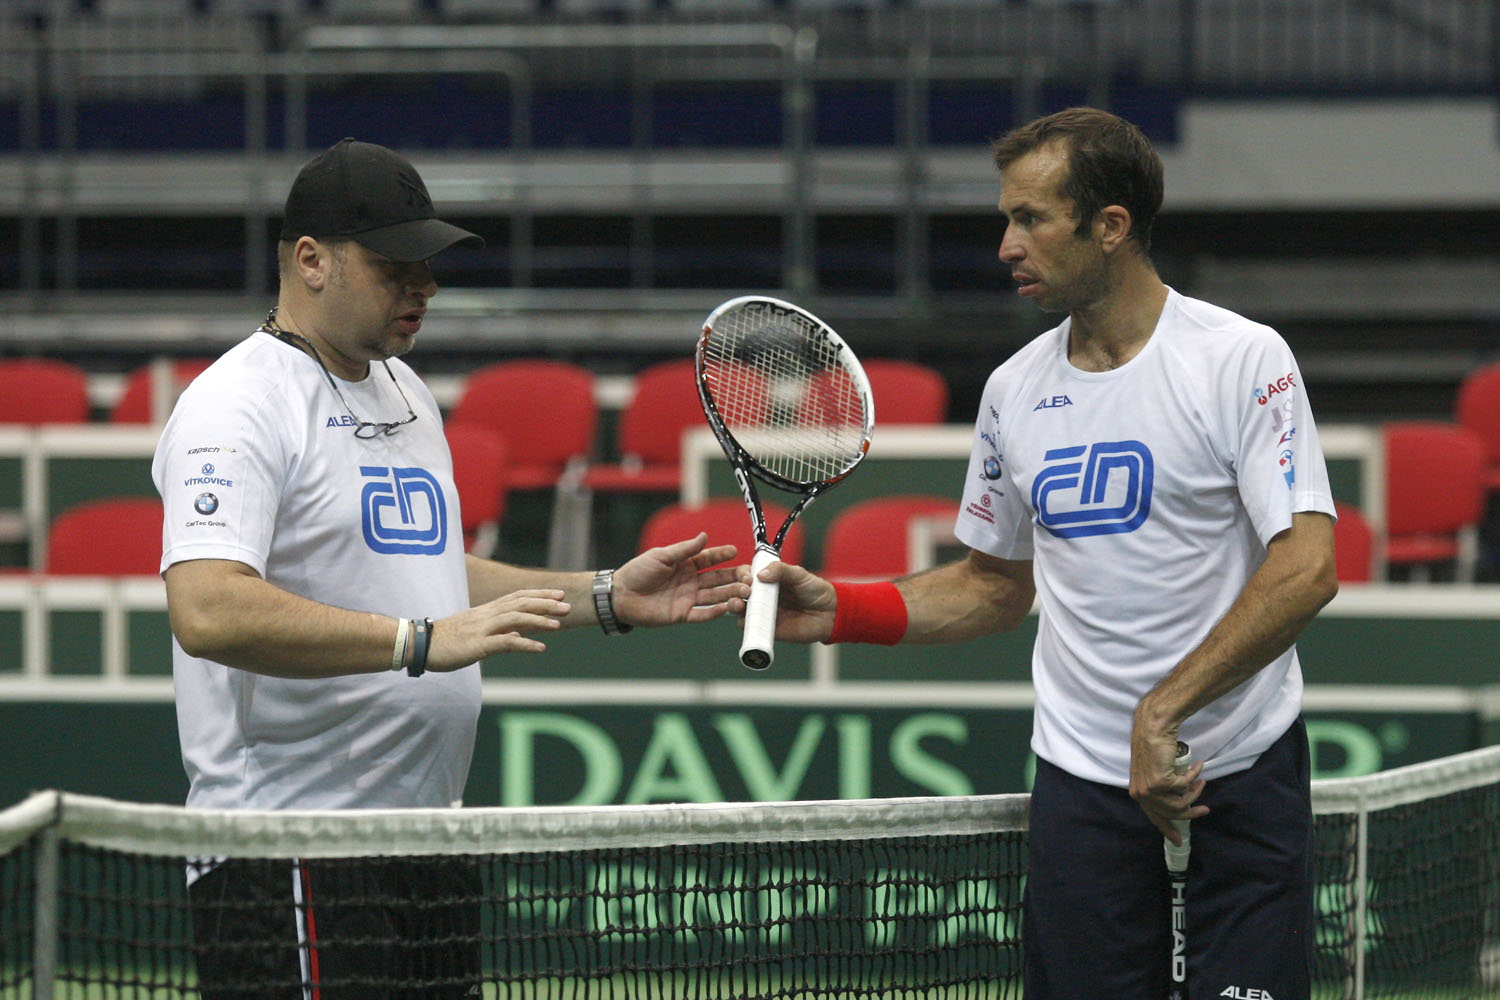 Radek Stepanek (R) of the Czech Republic is seen during a training session for the Davis Cup match on January 27, 2014 in Ostrava, Czech Republic.